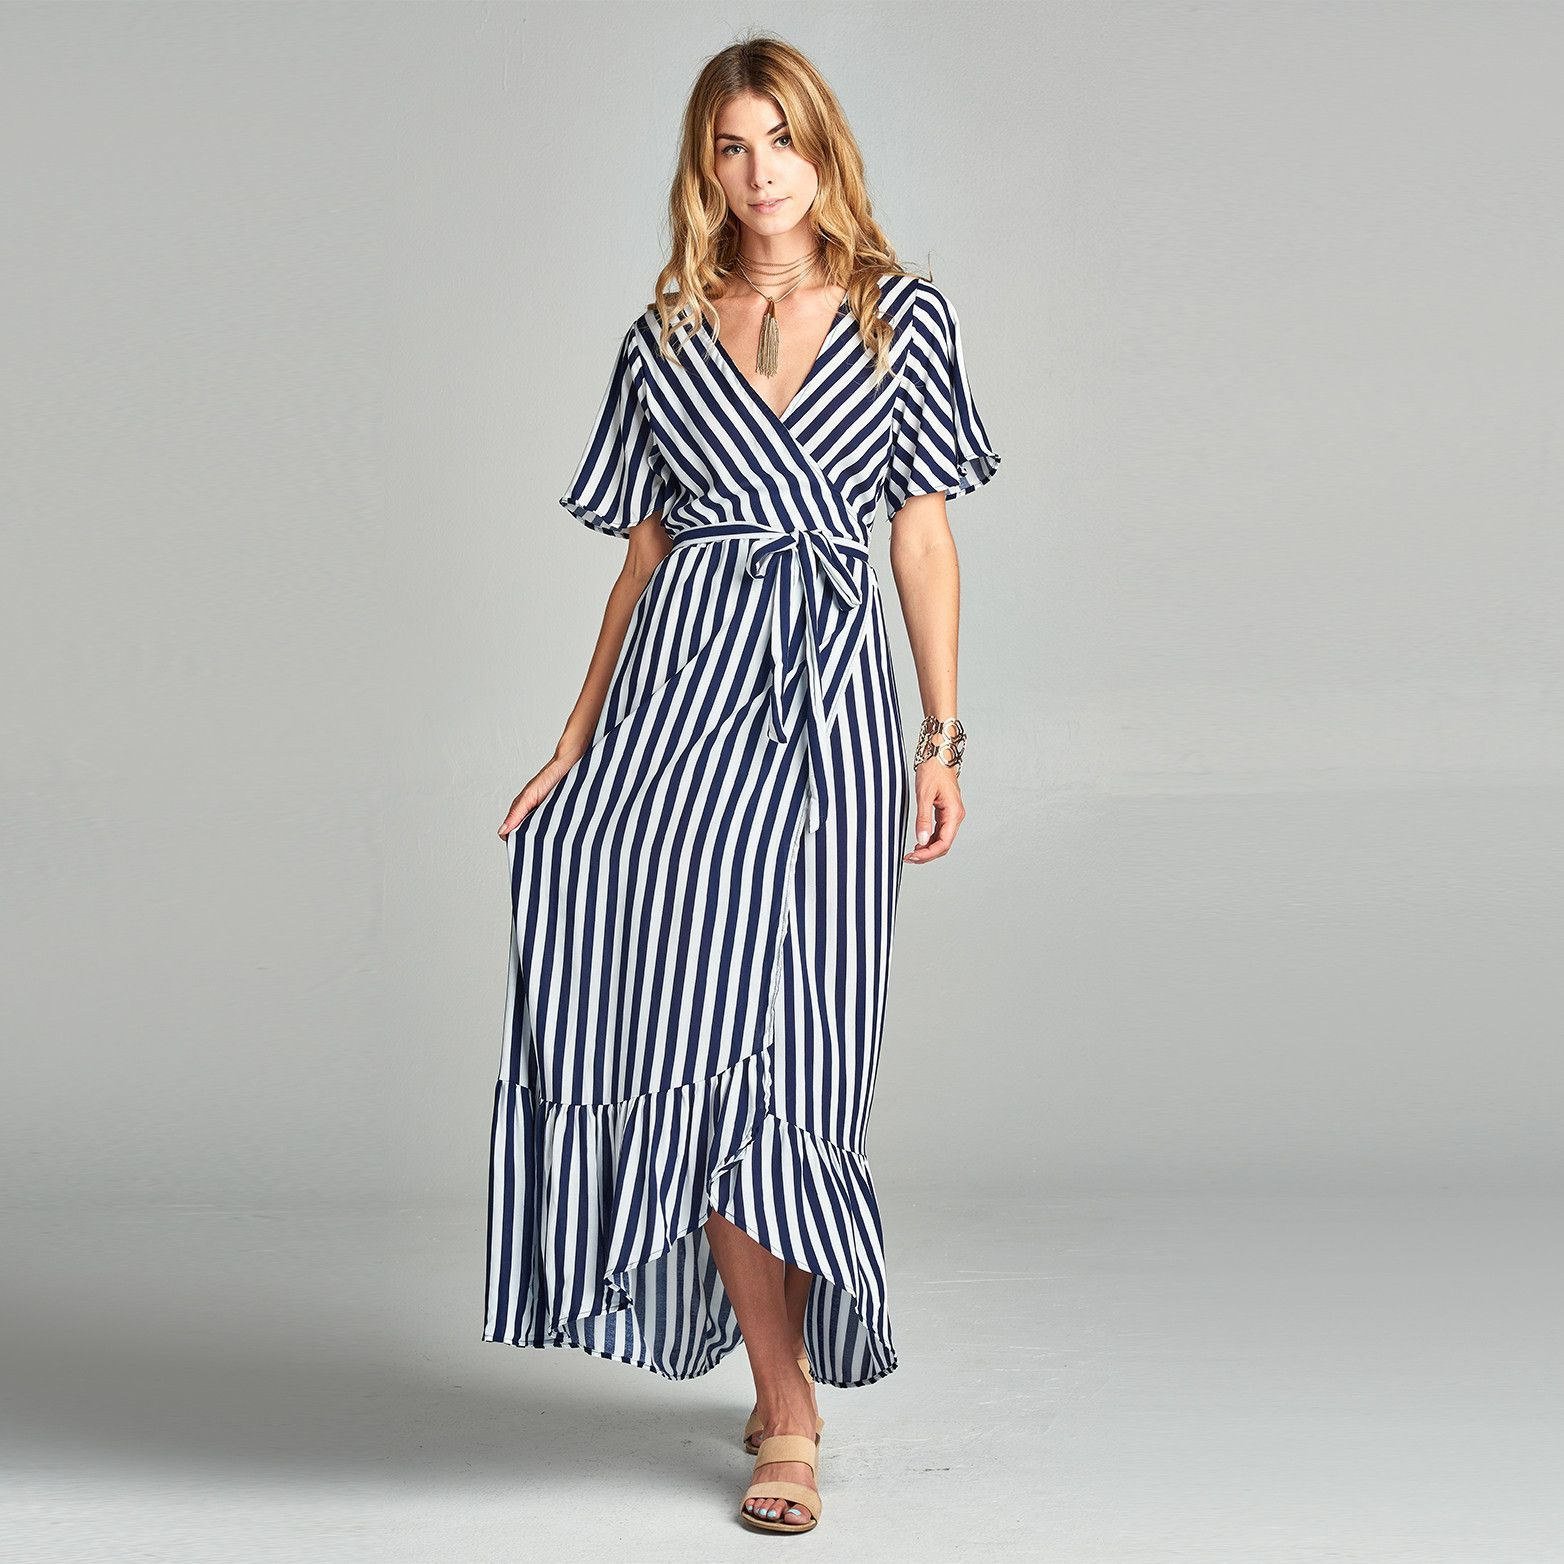 A Soft And Comfortable Maxi Dress With A Ruffled Hem For An Elegant Sway And A Nice Bold Vertical Stripe This Max Maxi Dress Wrap Around Dress Maxi Wrap Dress [ 1564 x 1564 Pixel ]